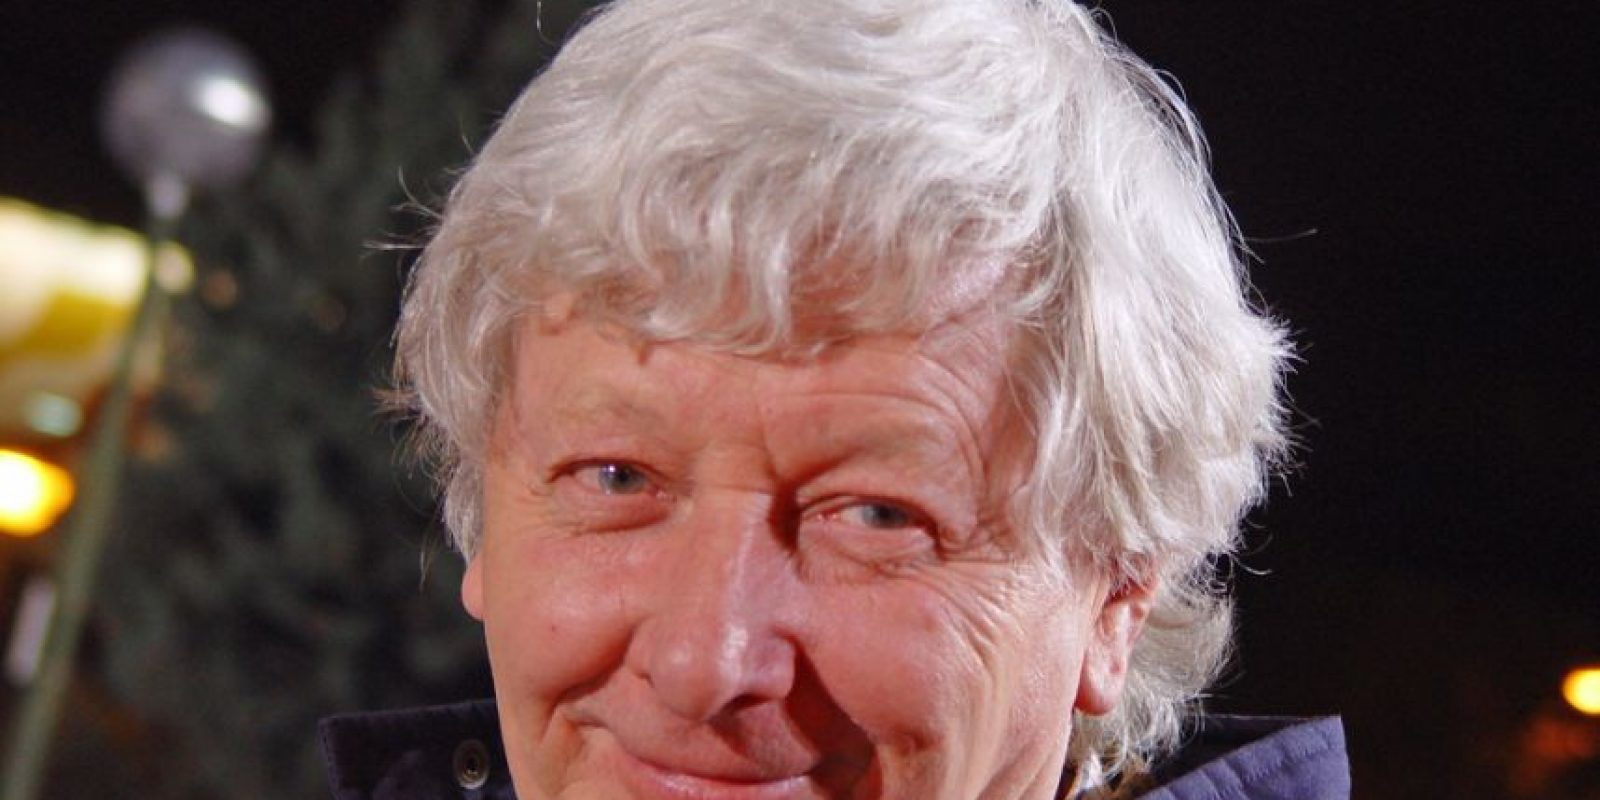 9. Andrew Jennings Foto: http://www.transparencyinsport.org/